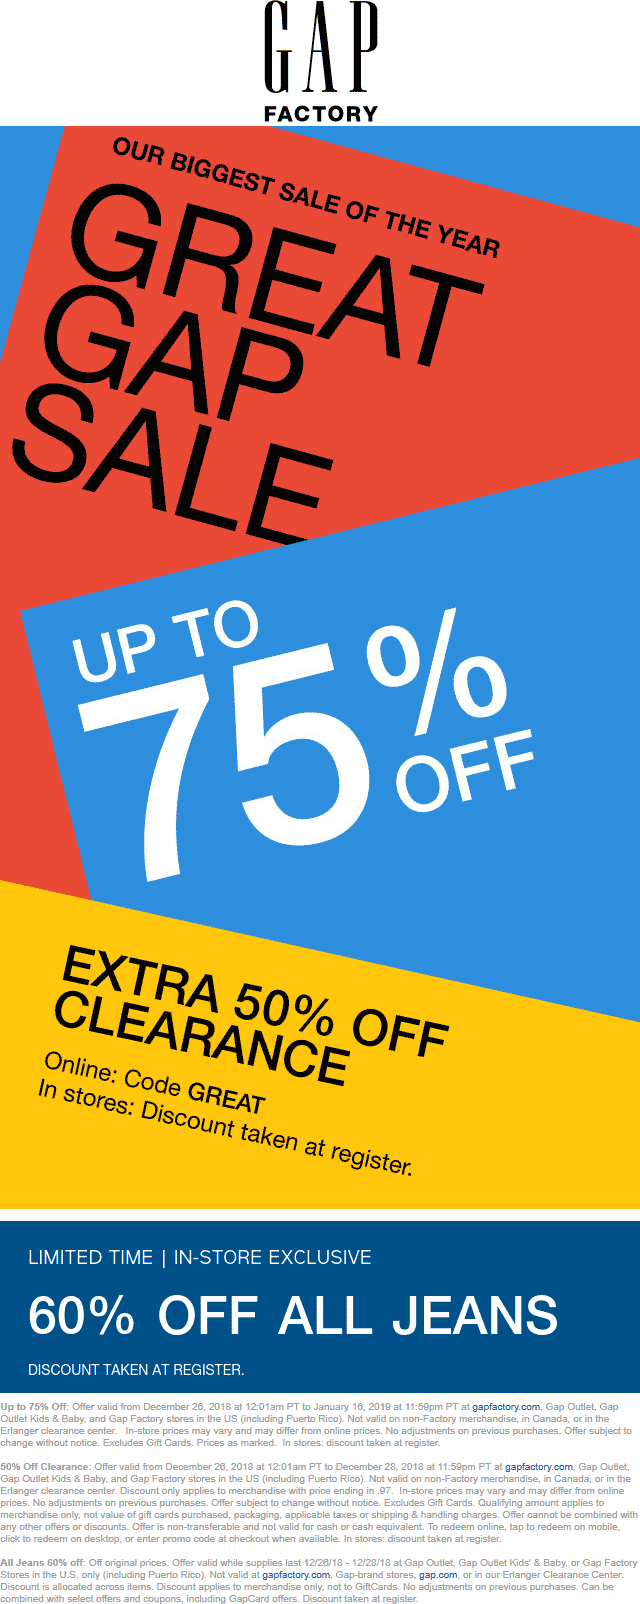 Gap Factory Coupon July 2019 Extra 50% off clearance & more at Gap Factory, or online via promo code GREAT